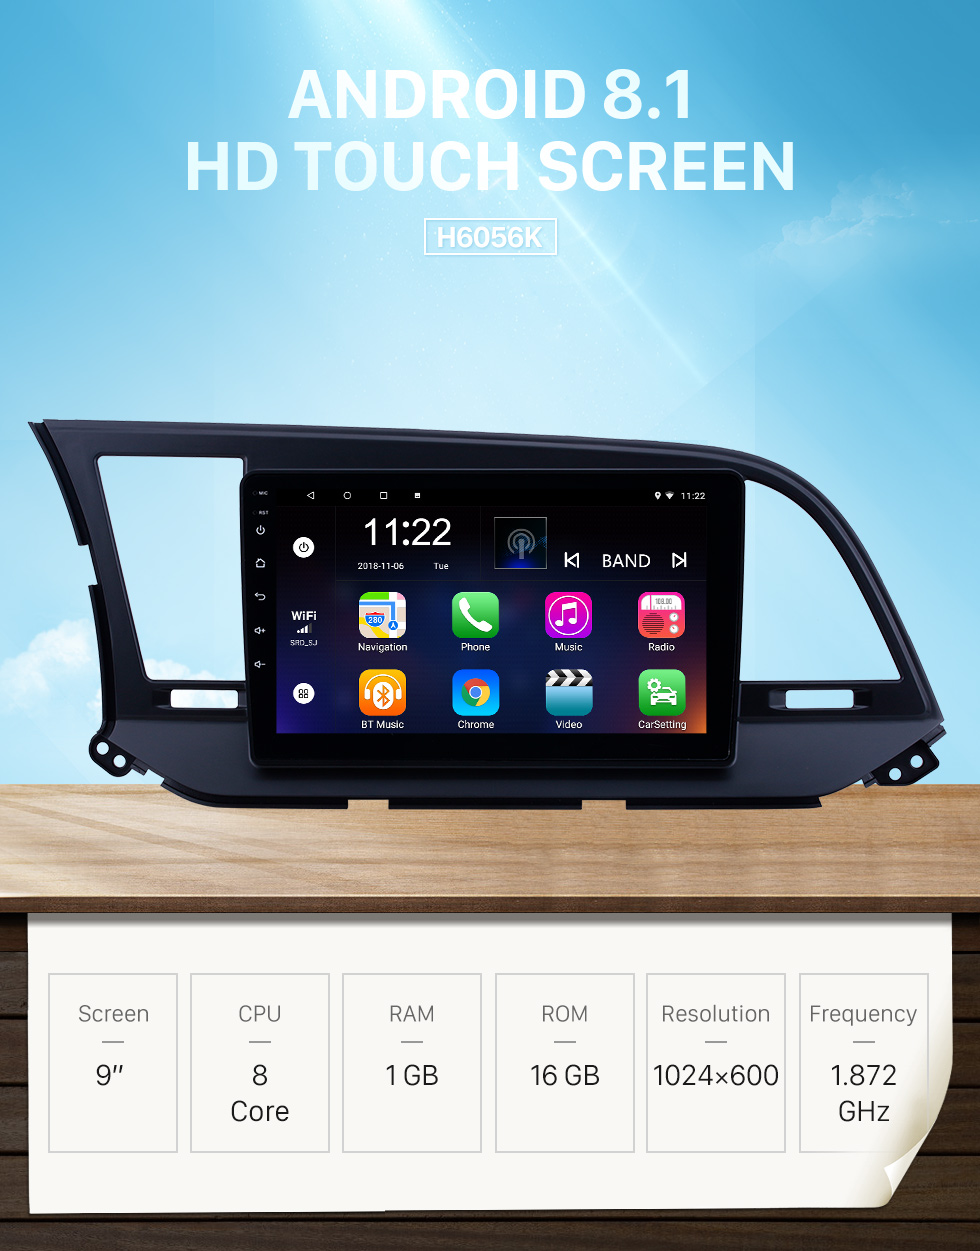 Seicane 9 inch HD Touchscreen Android 8.1 Radio GPS Navi head unit Replace for 2016 Hyundai Elantra Support USB WIFI Radio Bluetooth Mirror Link DVR OBD2 TPMS Aux